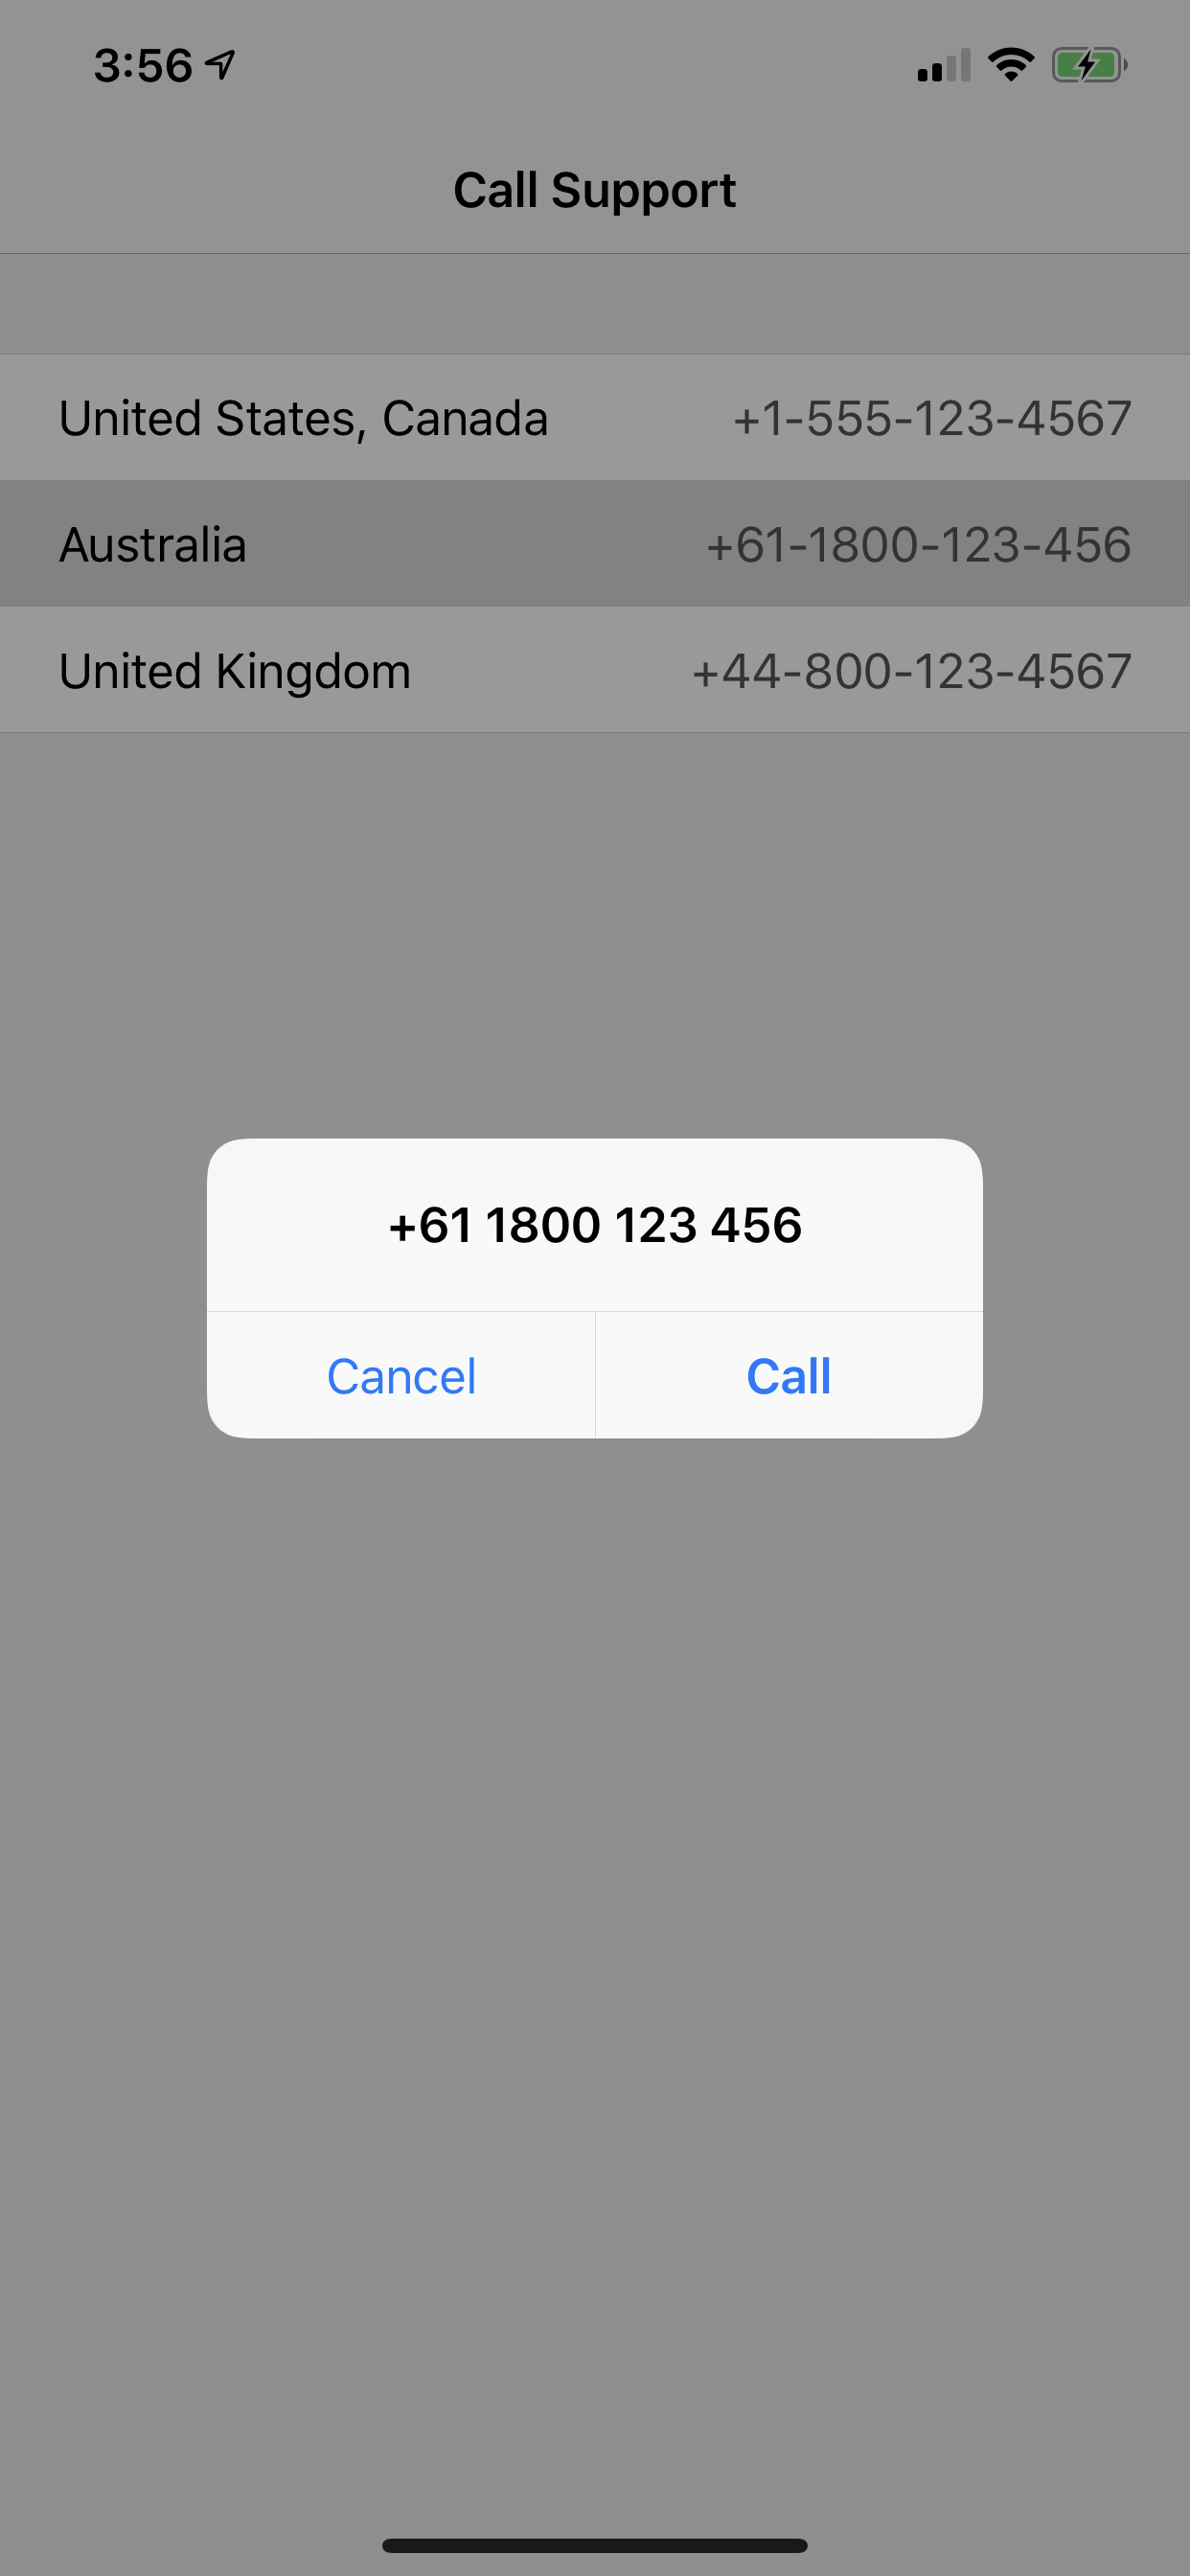 An alert showing the tapped phone number with a prompt to either Call or   Cancel